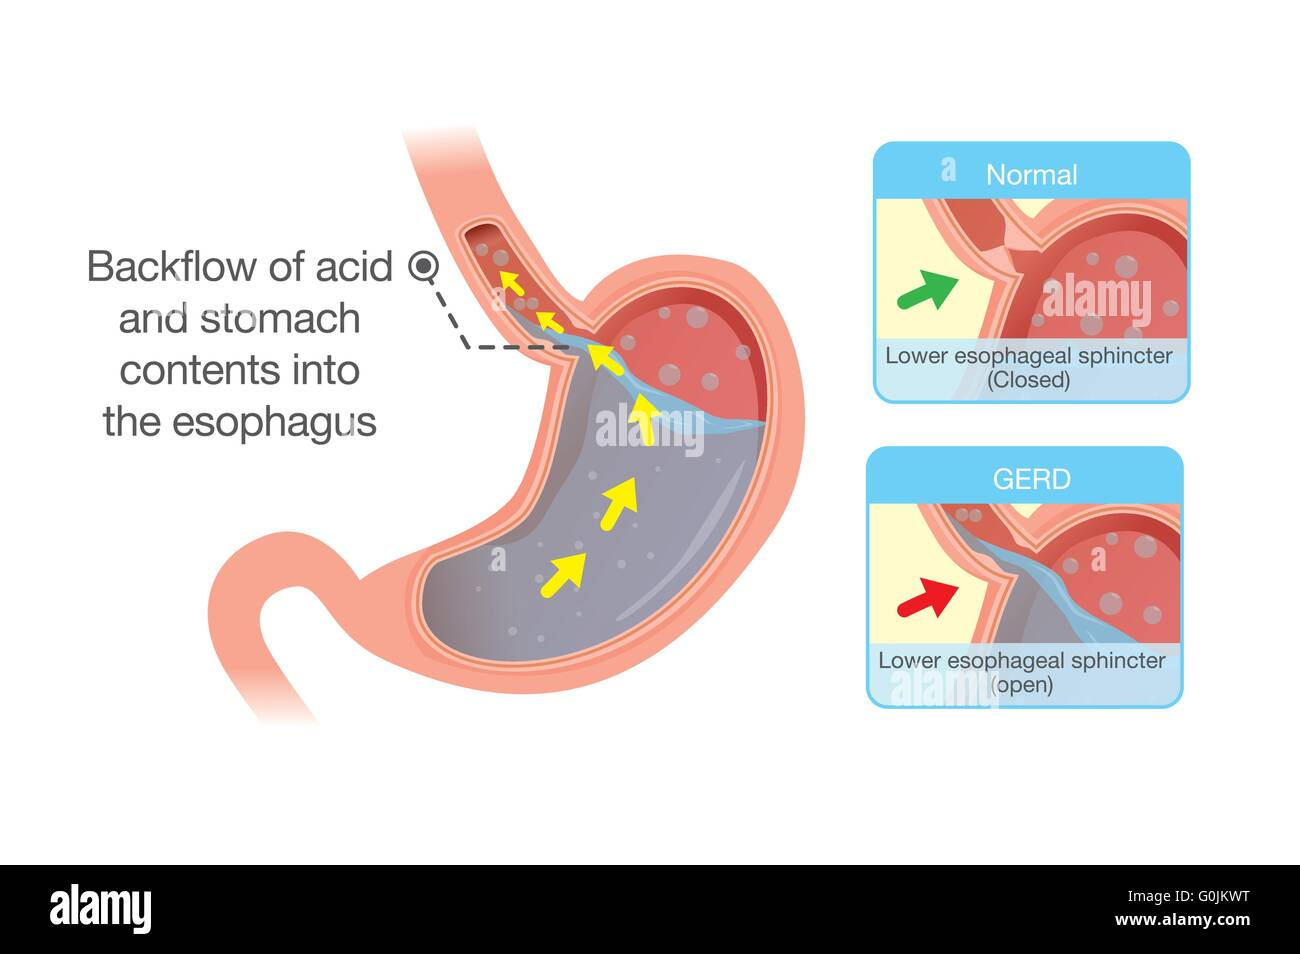 Acid in stomach back up into esophagus stock vector art acid in stomach back up into esophagus ccuart Image collections